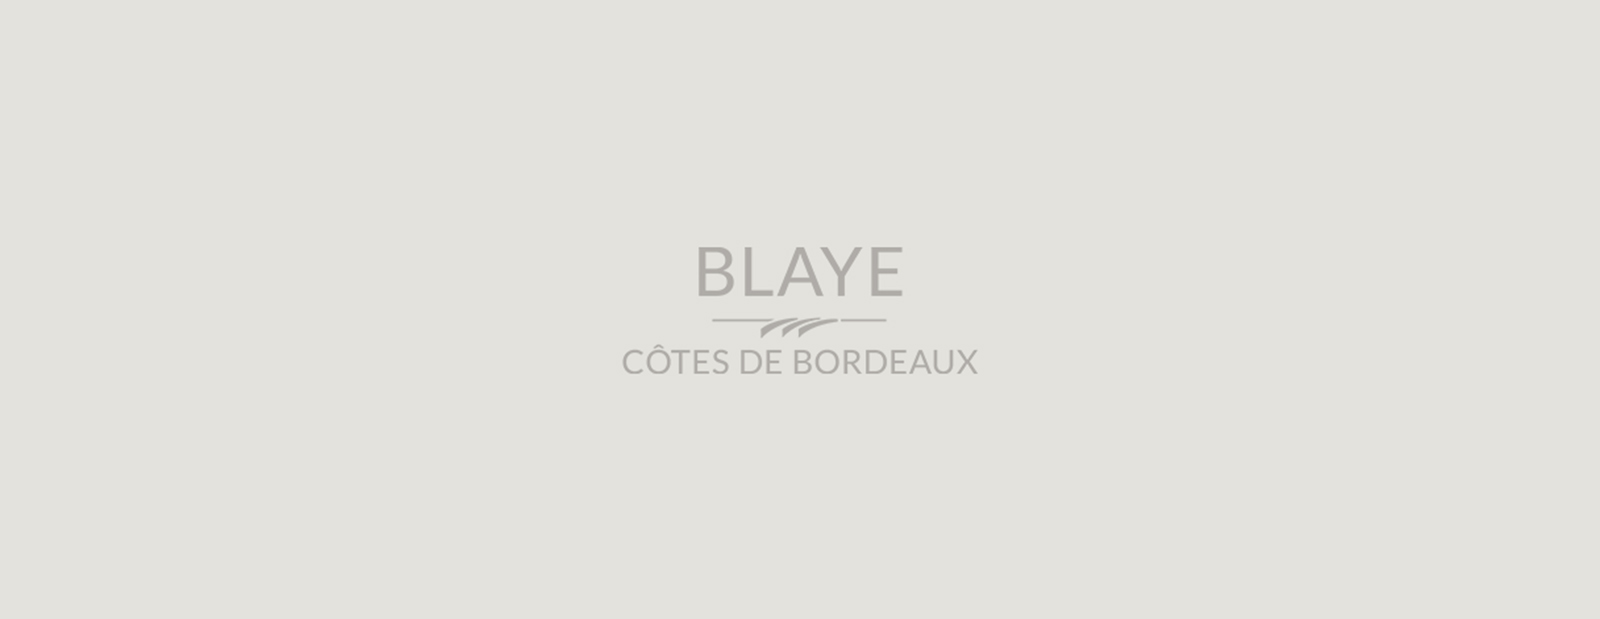 <br /> <b>Notice</b>:  Undefined variable: titre in <b>/home/qmduqdb/www/wp-content/themes/blaye-cdb/templates/enfant-evenement.php</b> on line <b>97</b><br />